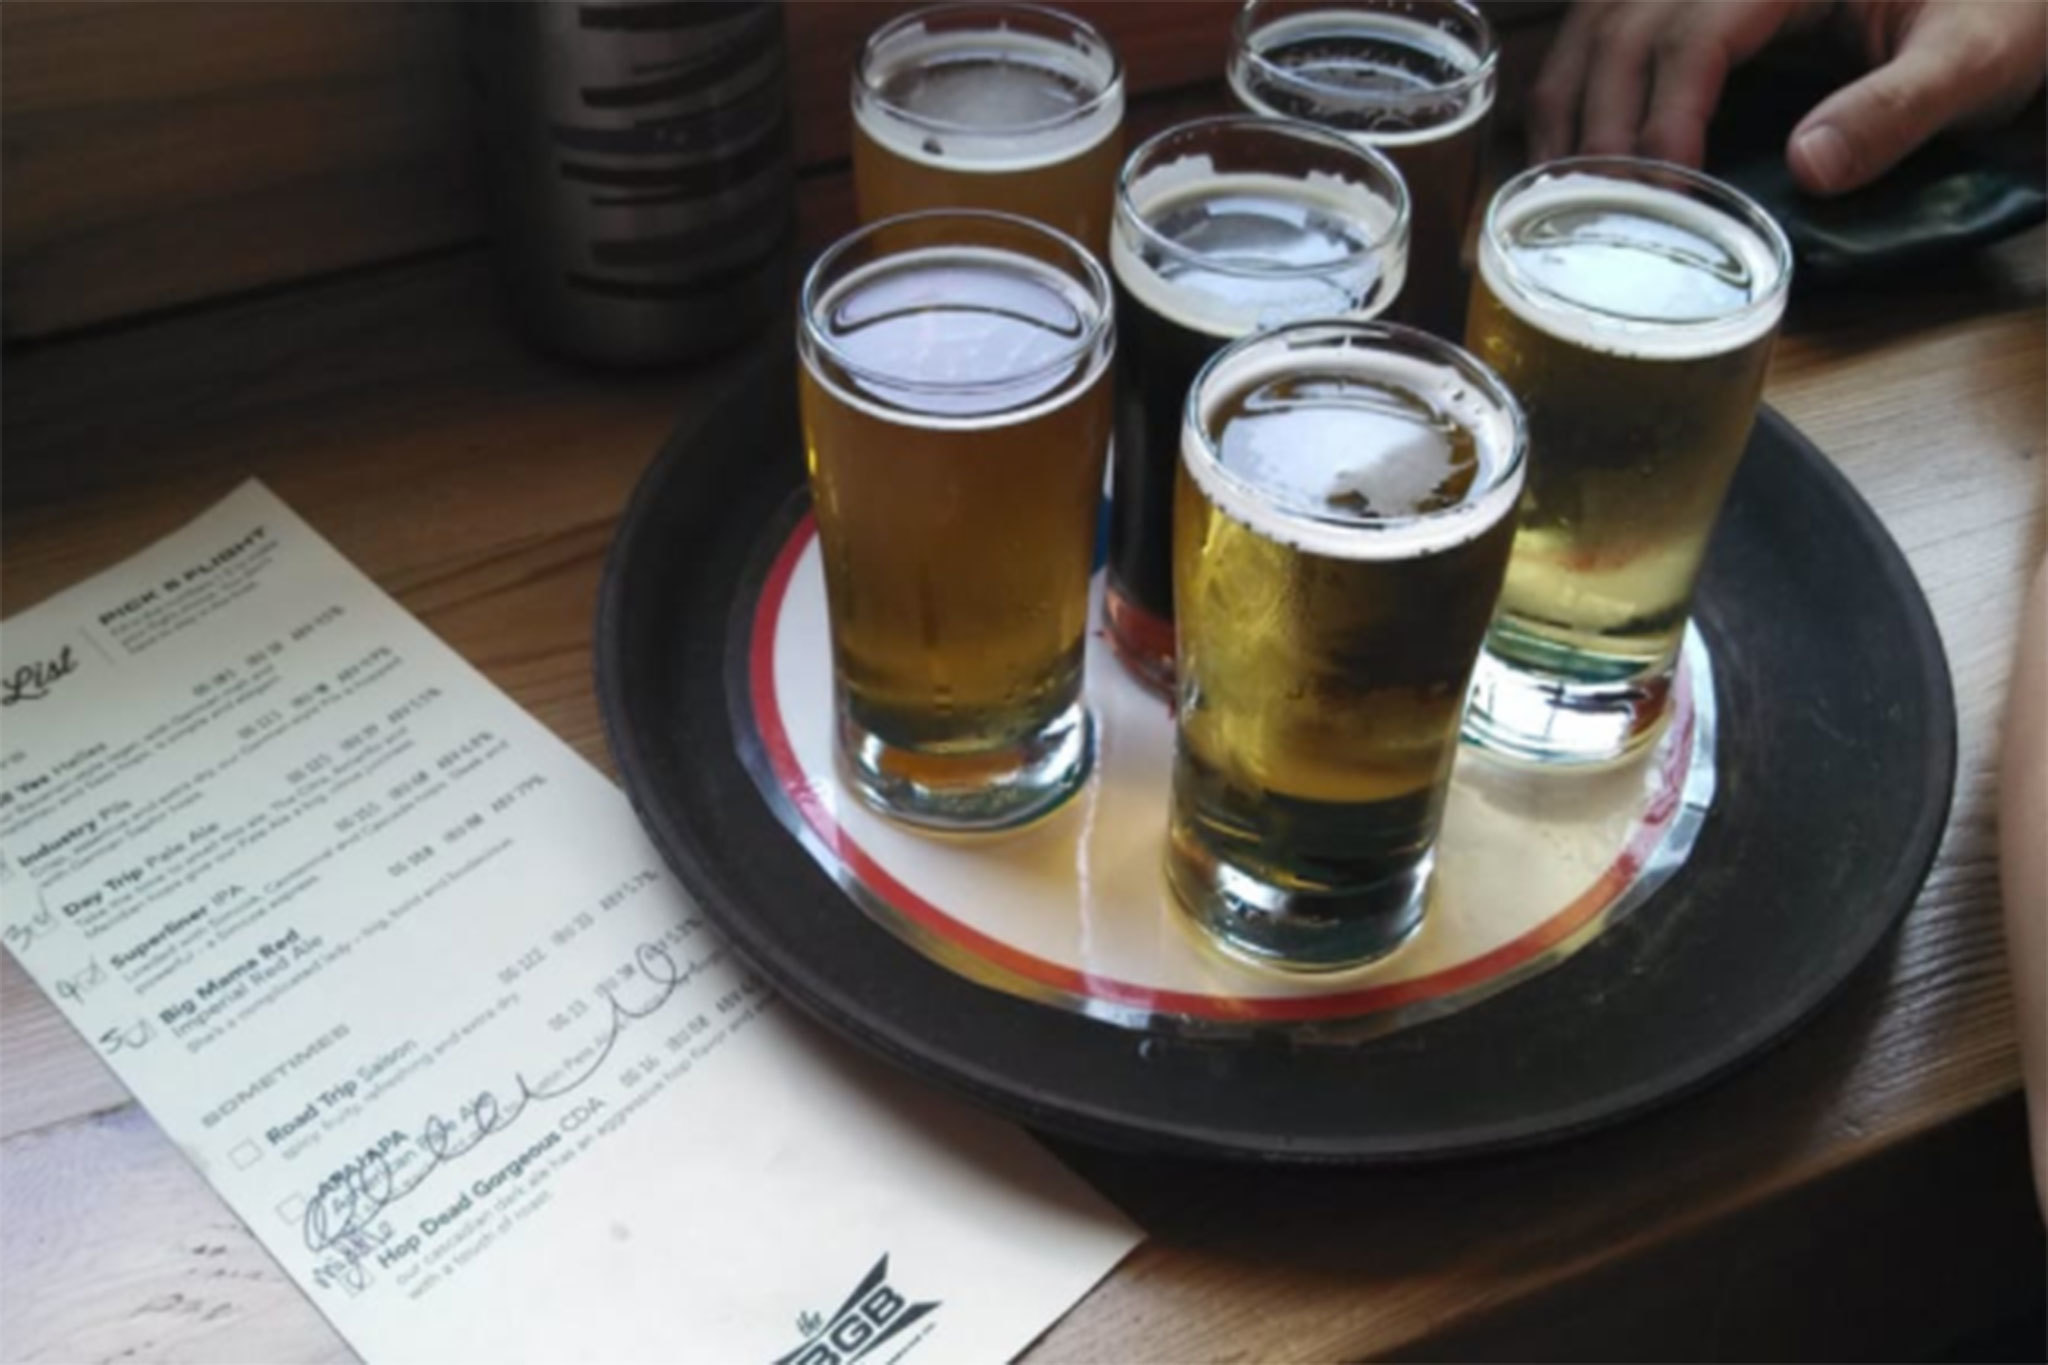 The Austin Beer Garden Brewing Company